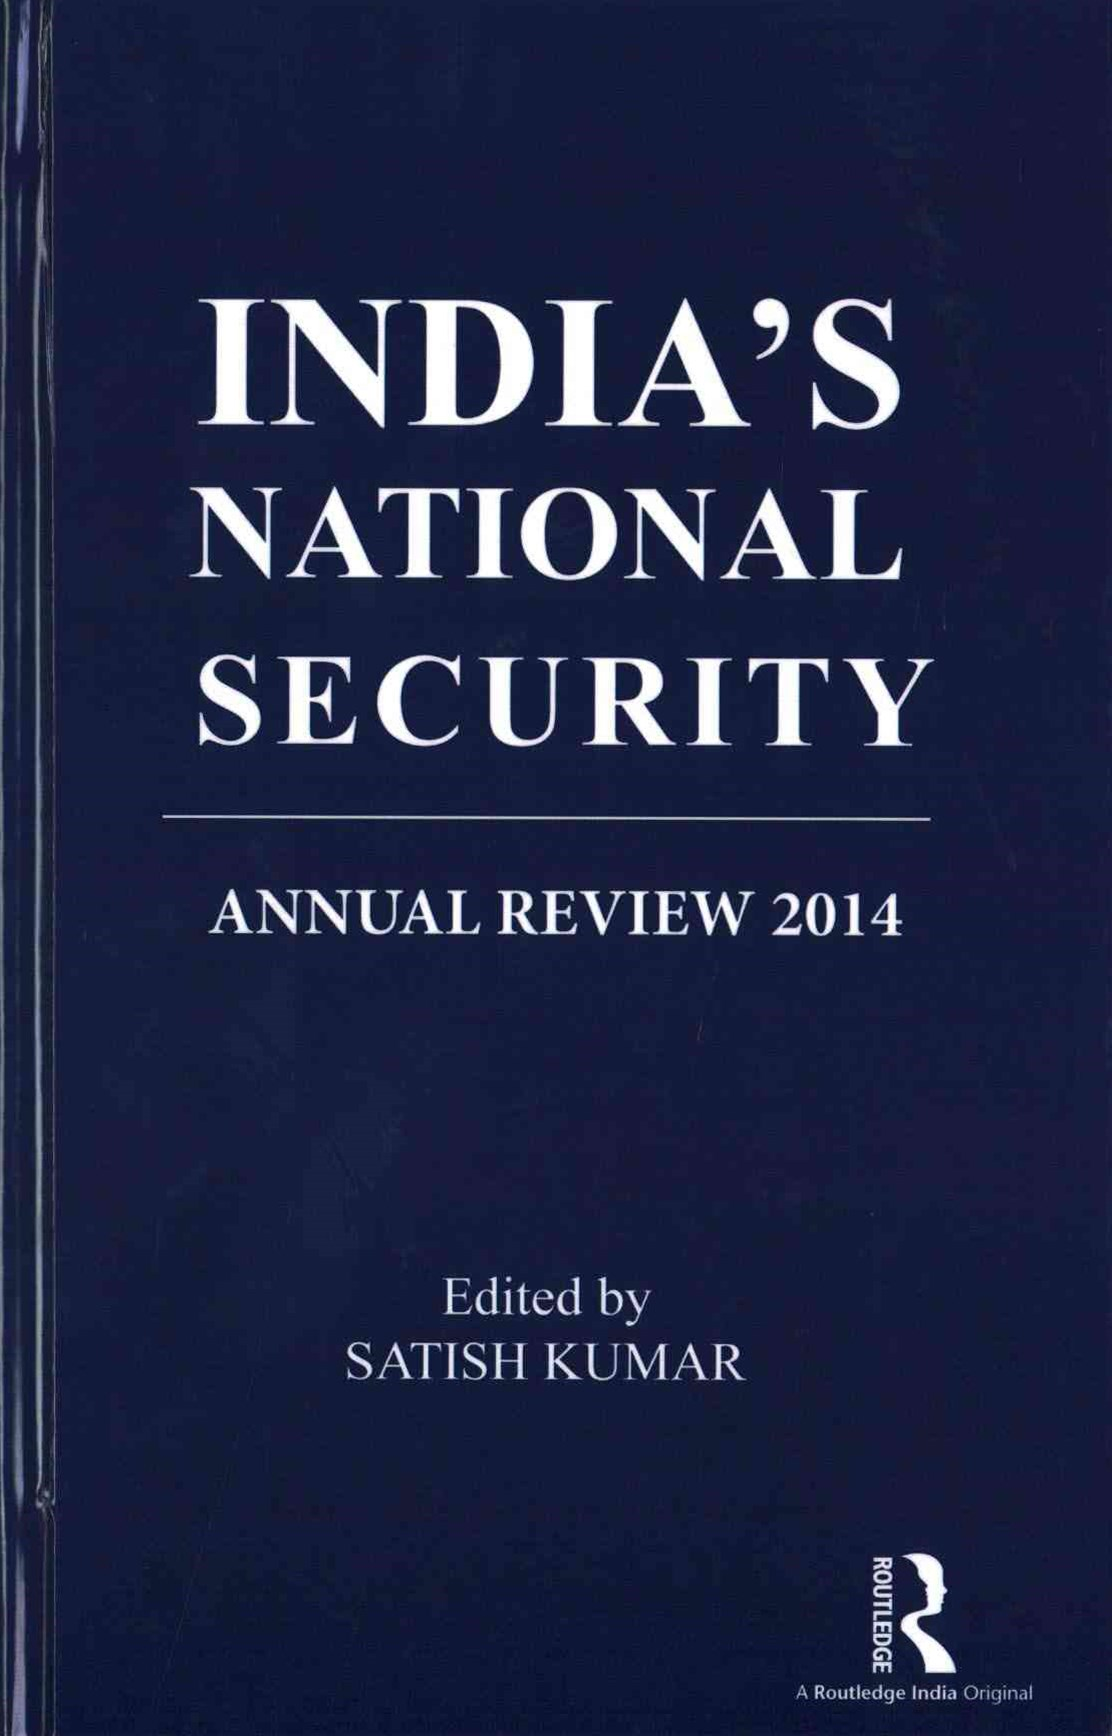 India's National Security